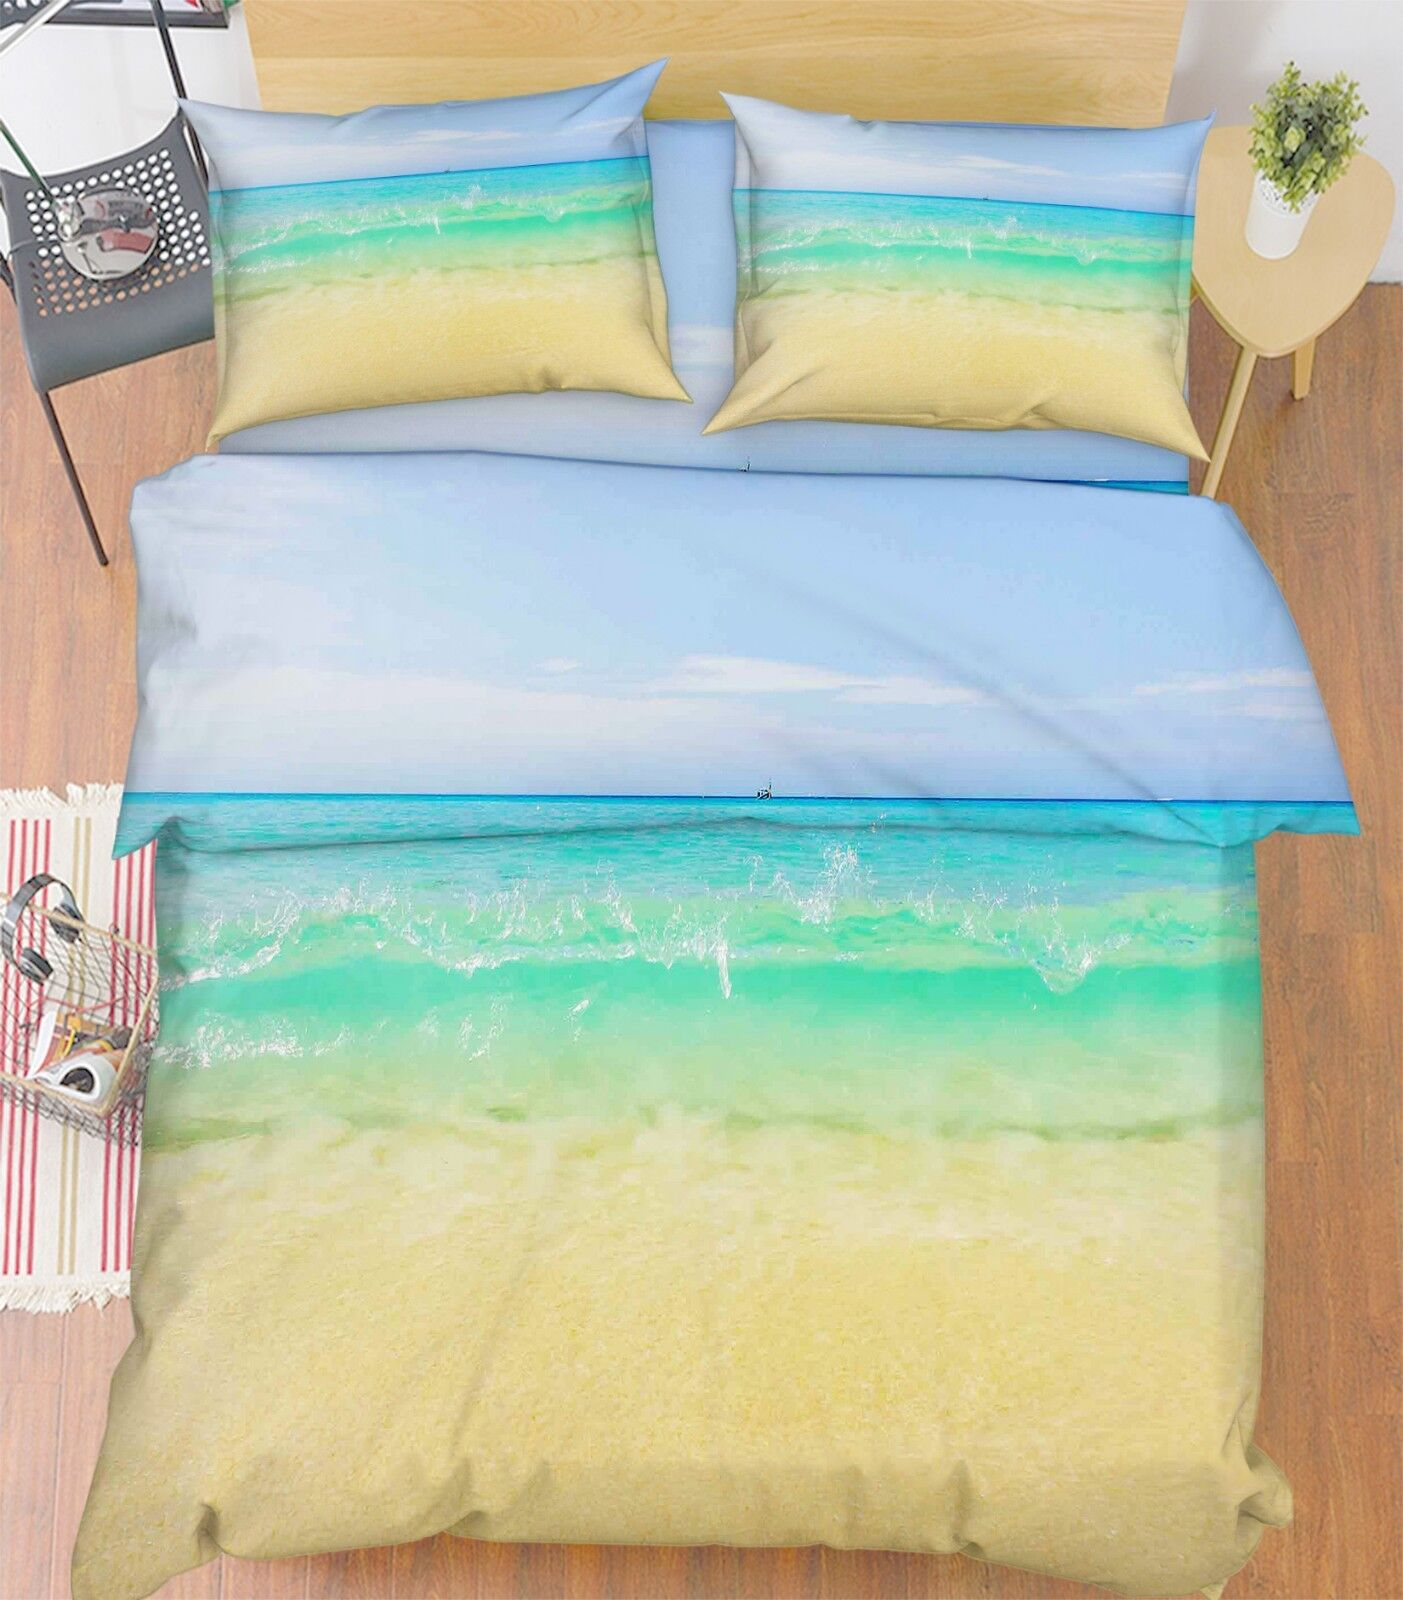 3D Sky Surf Beach 688 Bed Pillowcases Quilt Duvet Cover Set Single Queen King CA